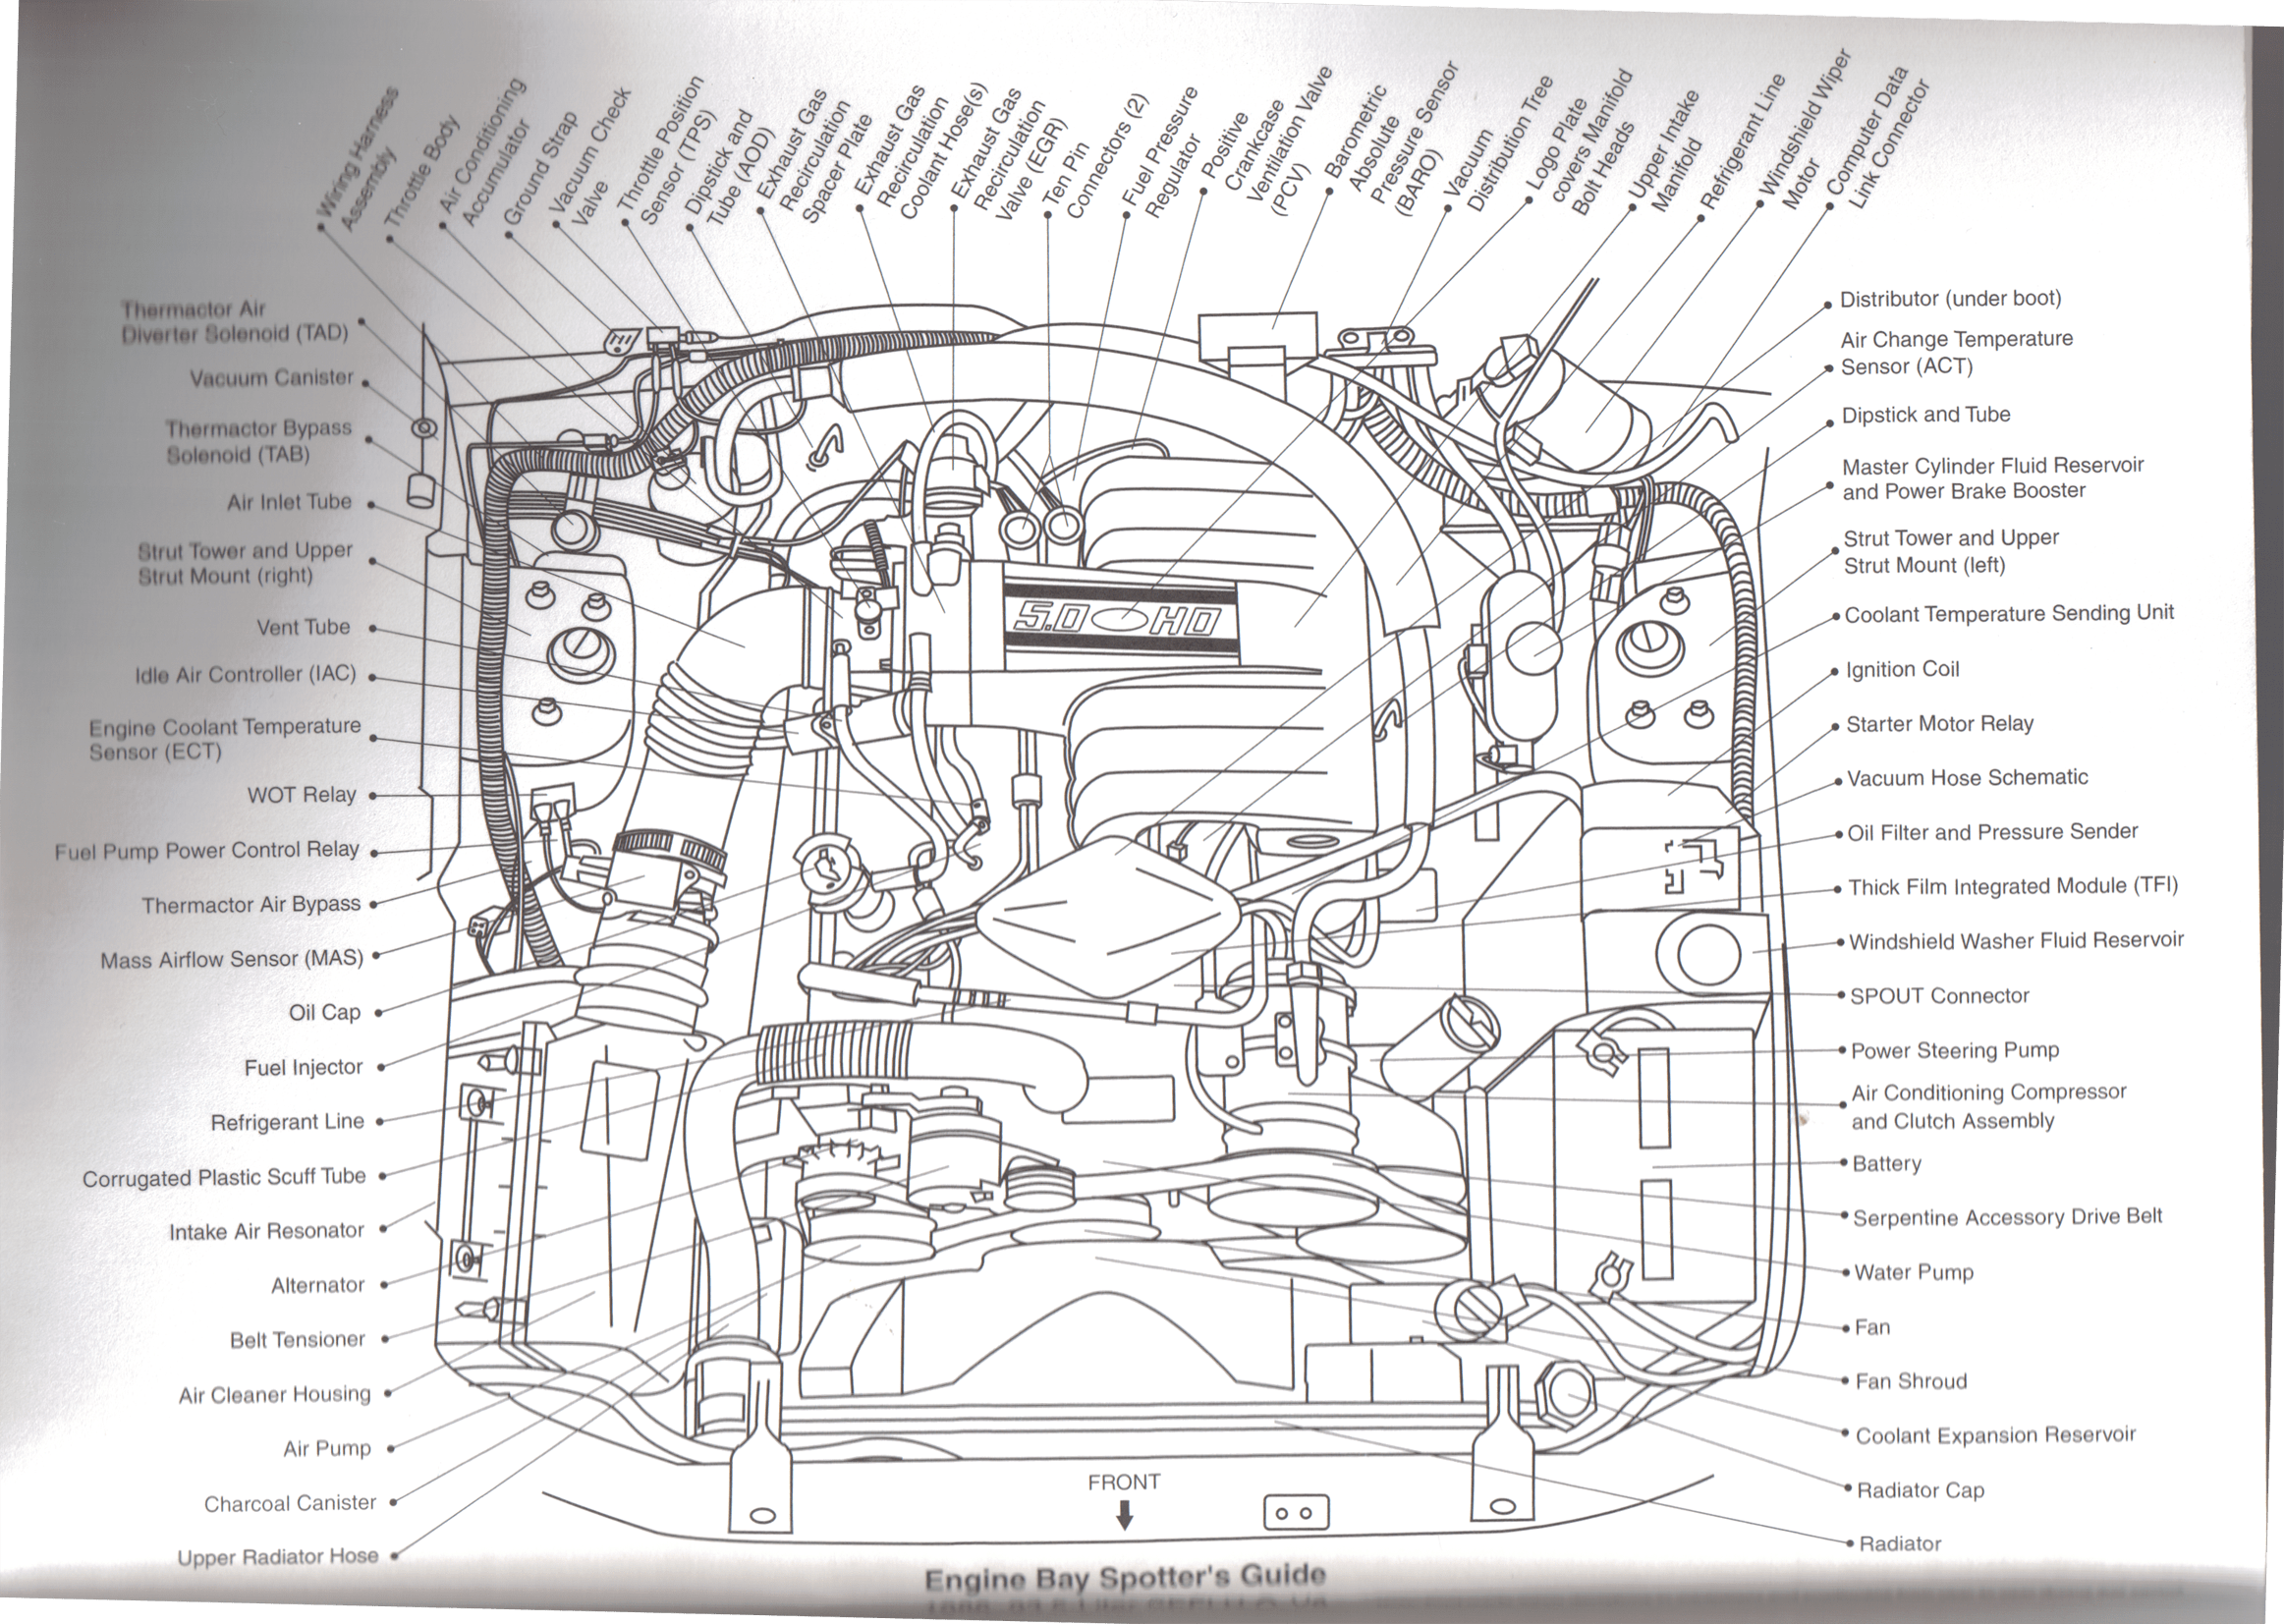 1989 mustang 5 0 alternator wiring diagram 42 wiring diagram images wiring  diagrams 138dhw co EZ